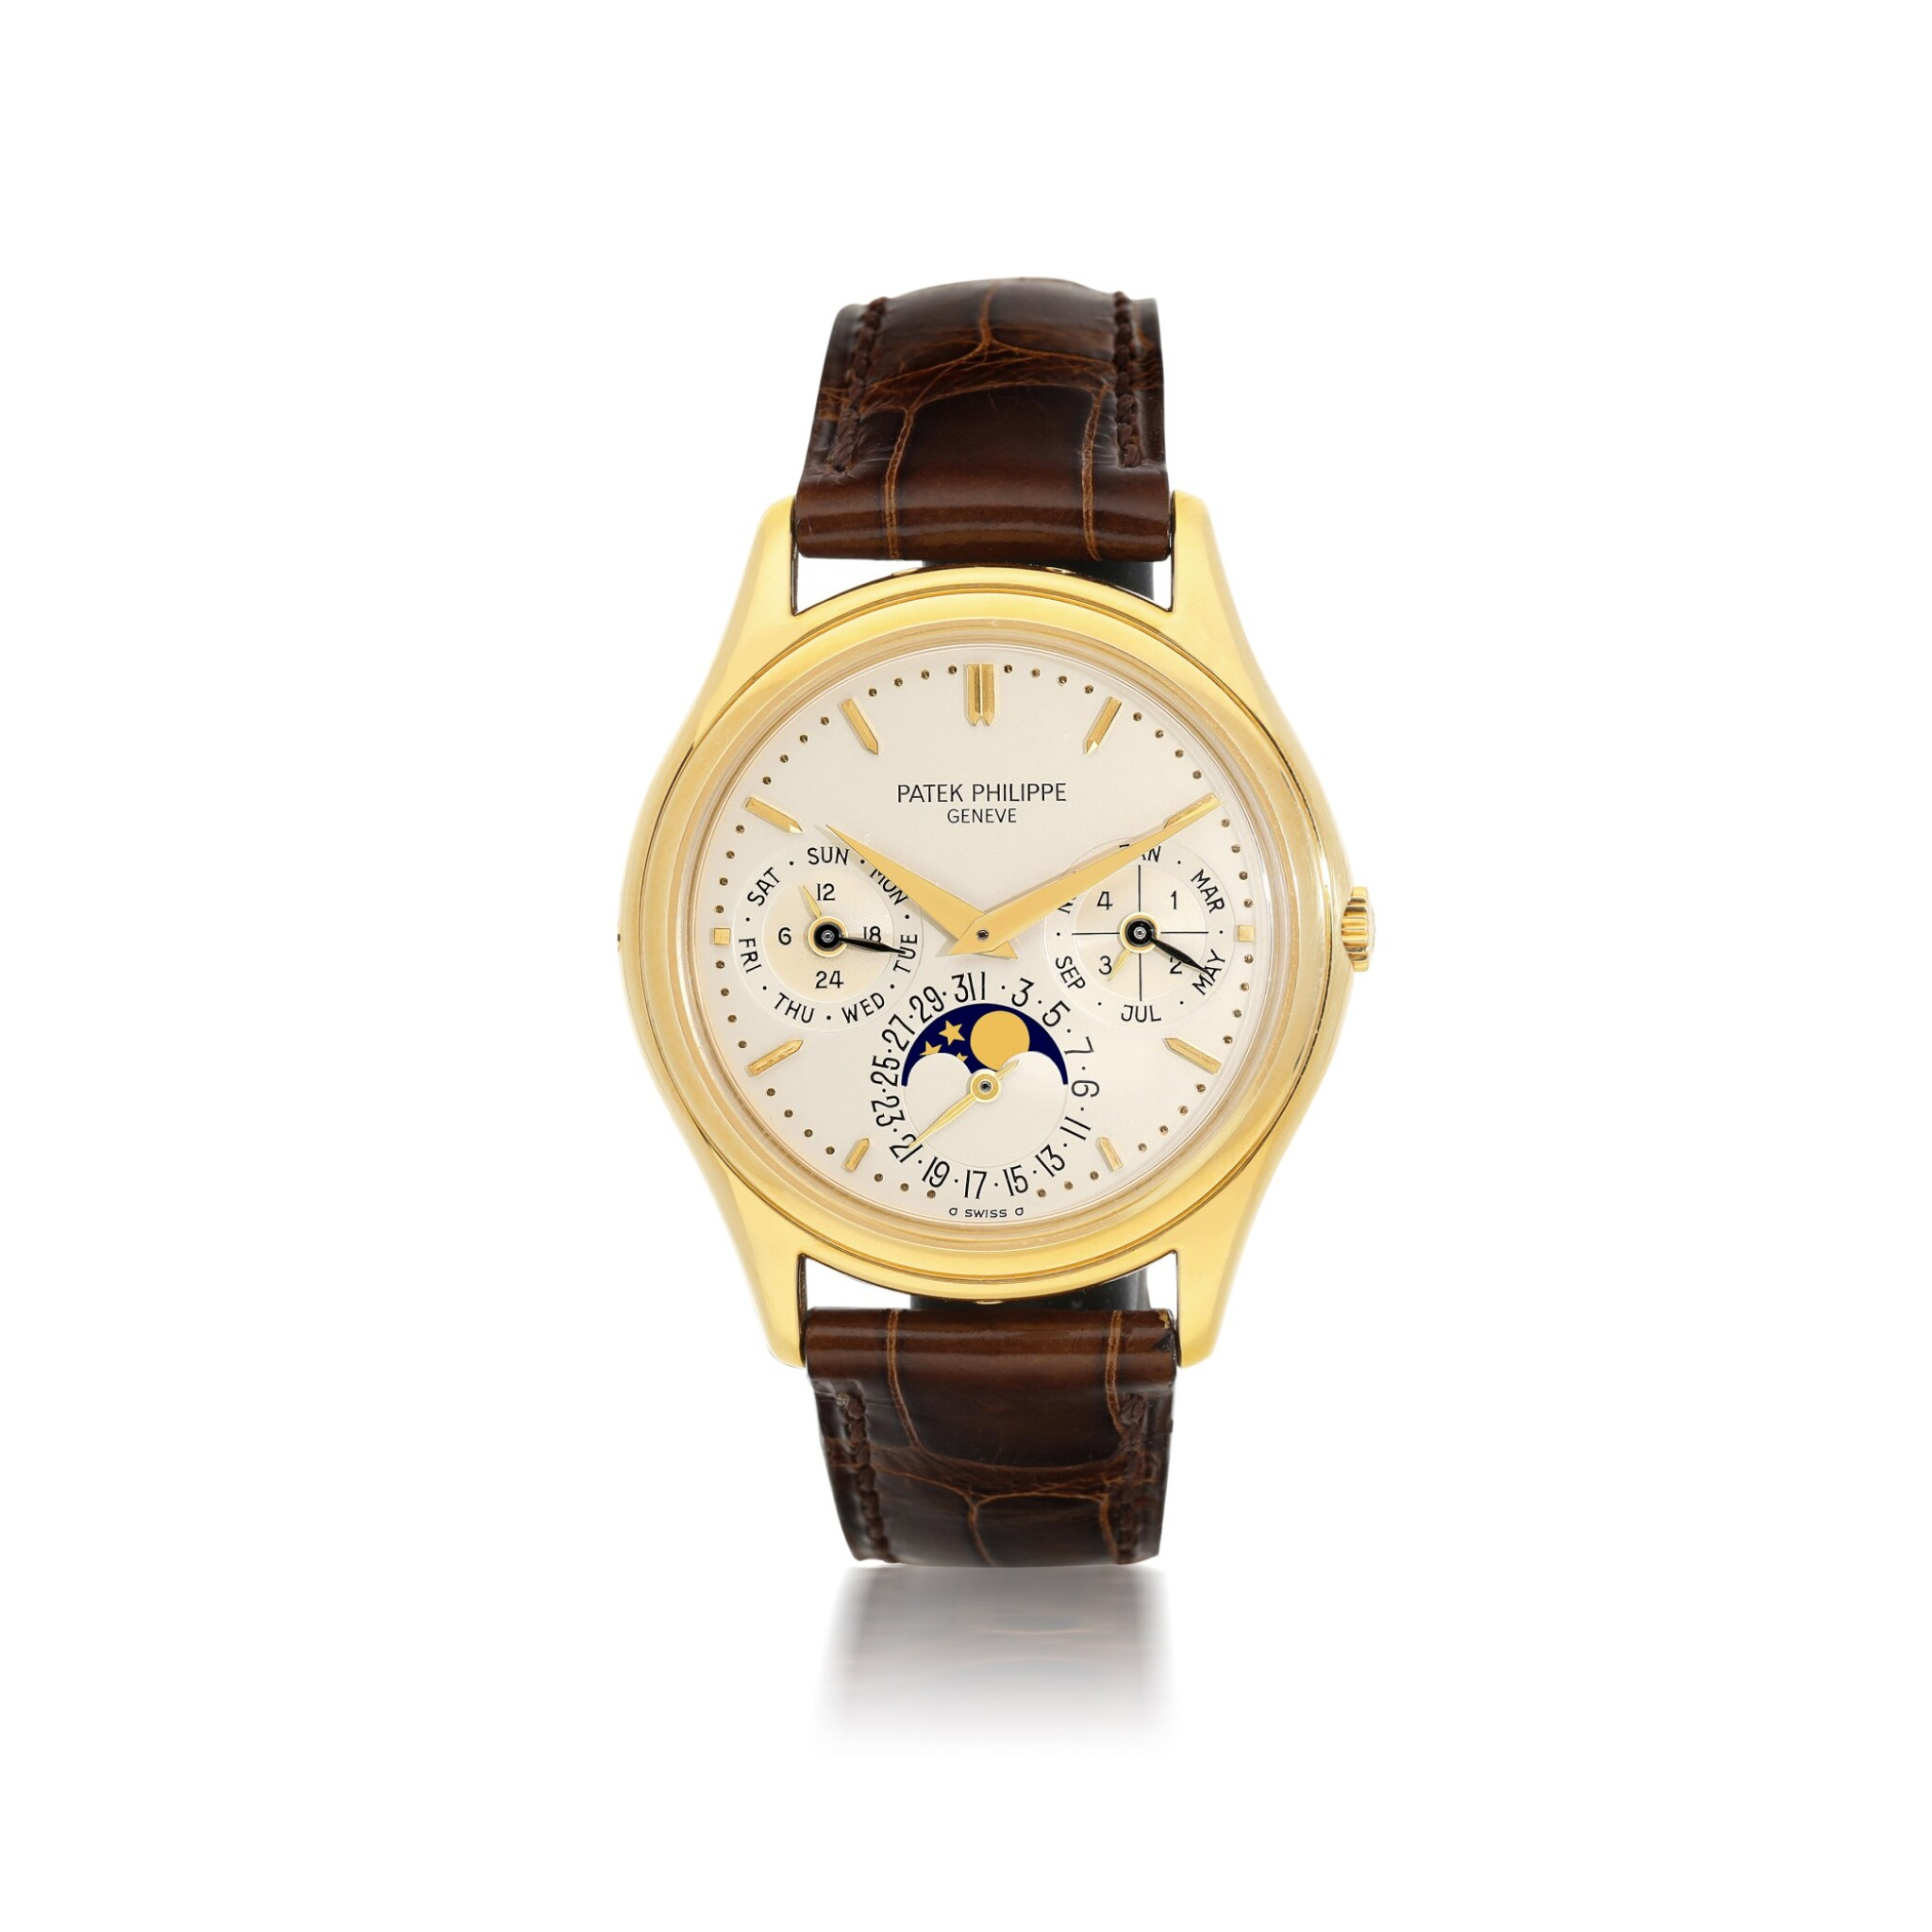 View 1 of Lot 52. PATEK PHILIPPE | REFERENCE 3941 A YELLOW GOLD AUTOMATIC PERPETUAL CALENDAR WRISTWATCH WITH MOON PHASES, CIRCA 1990.